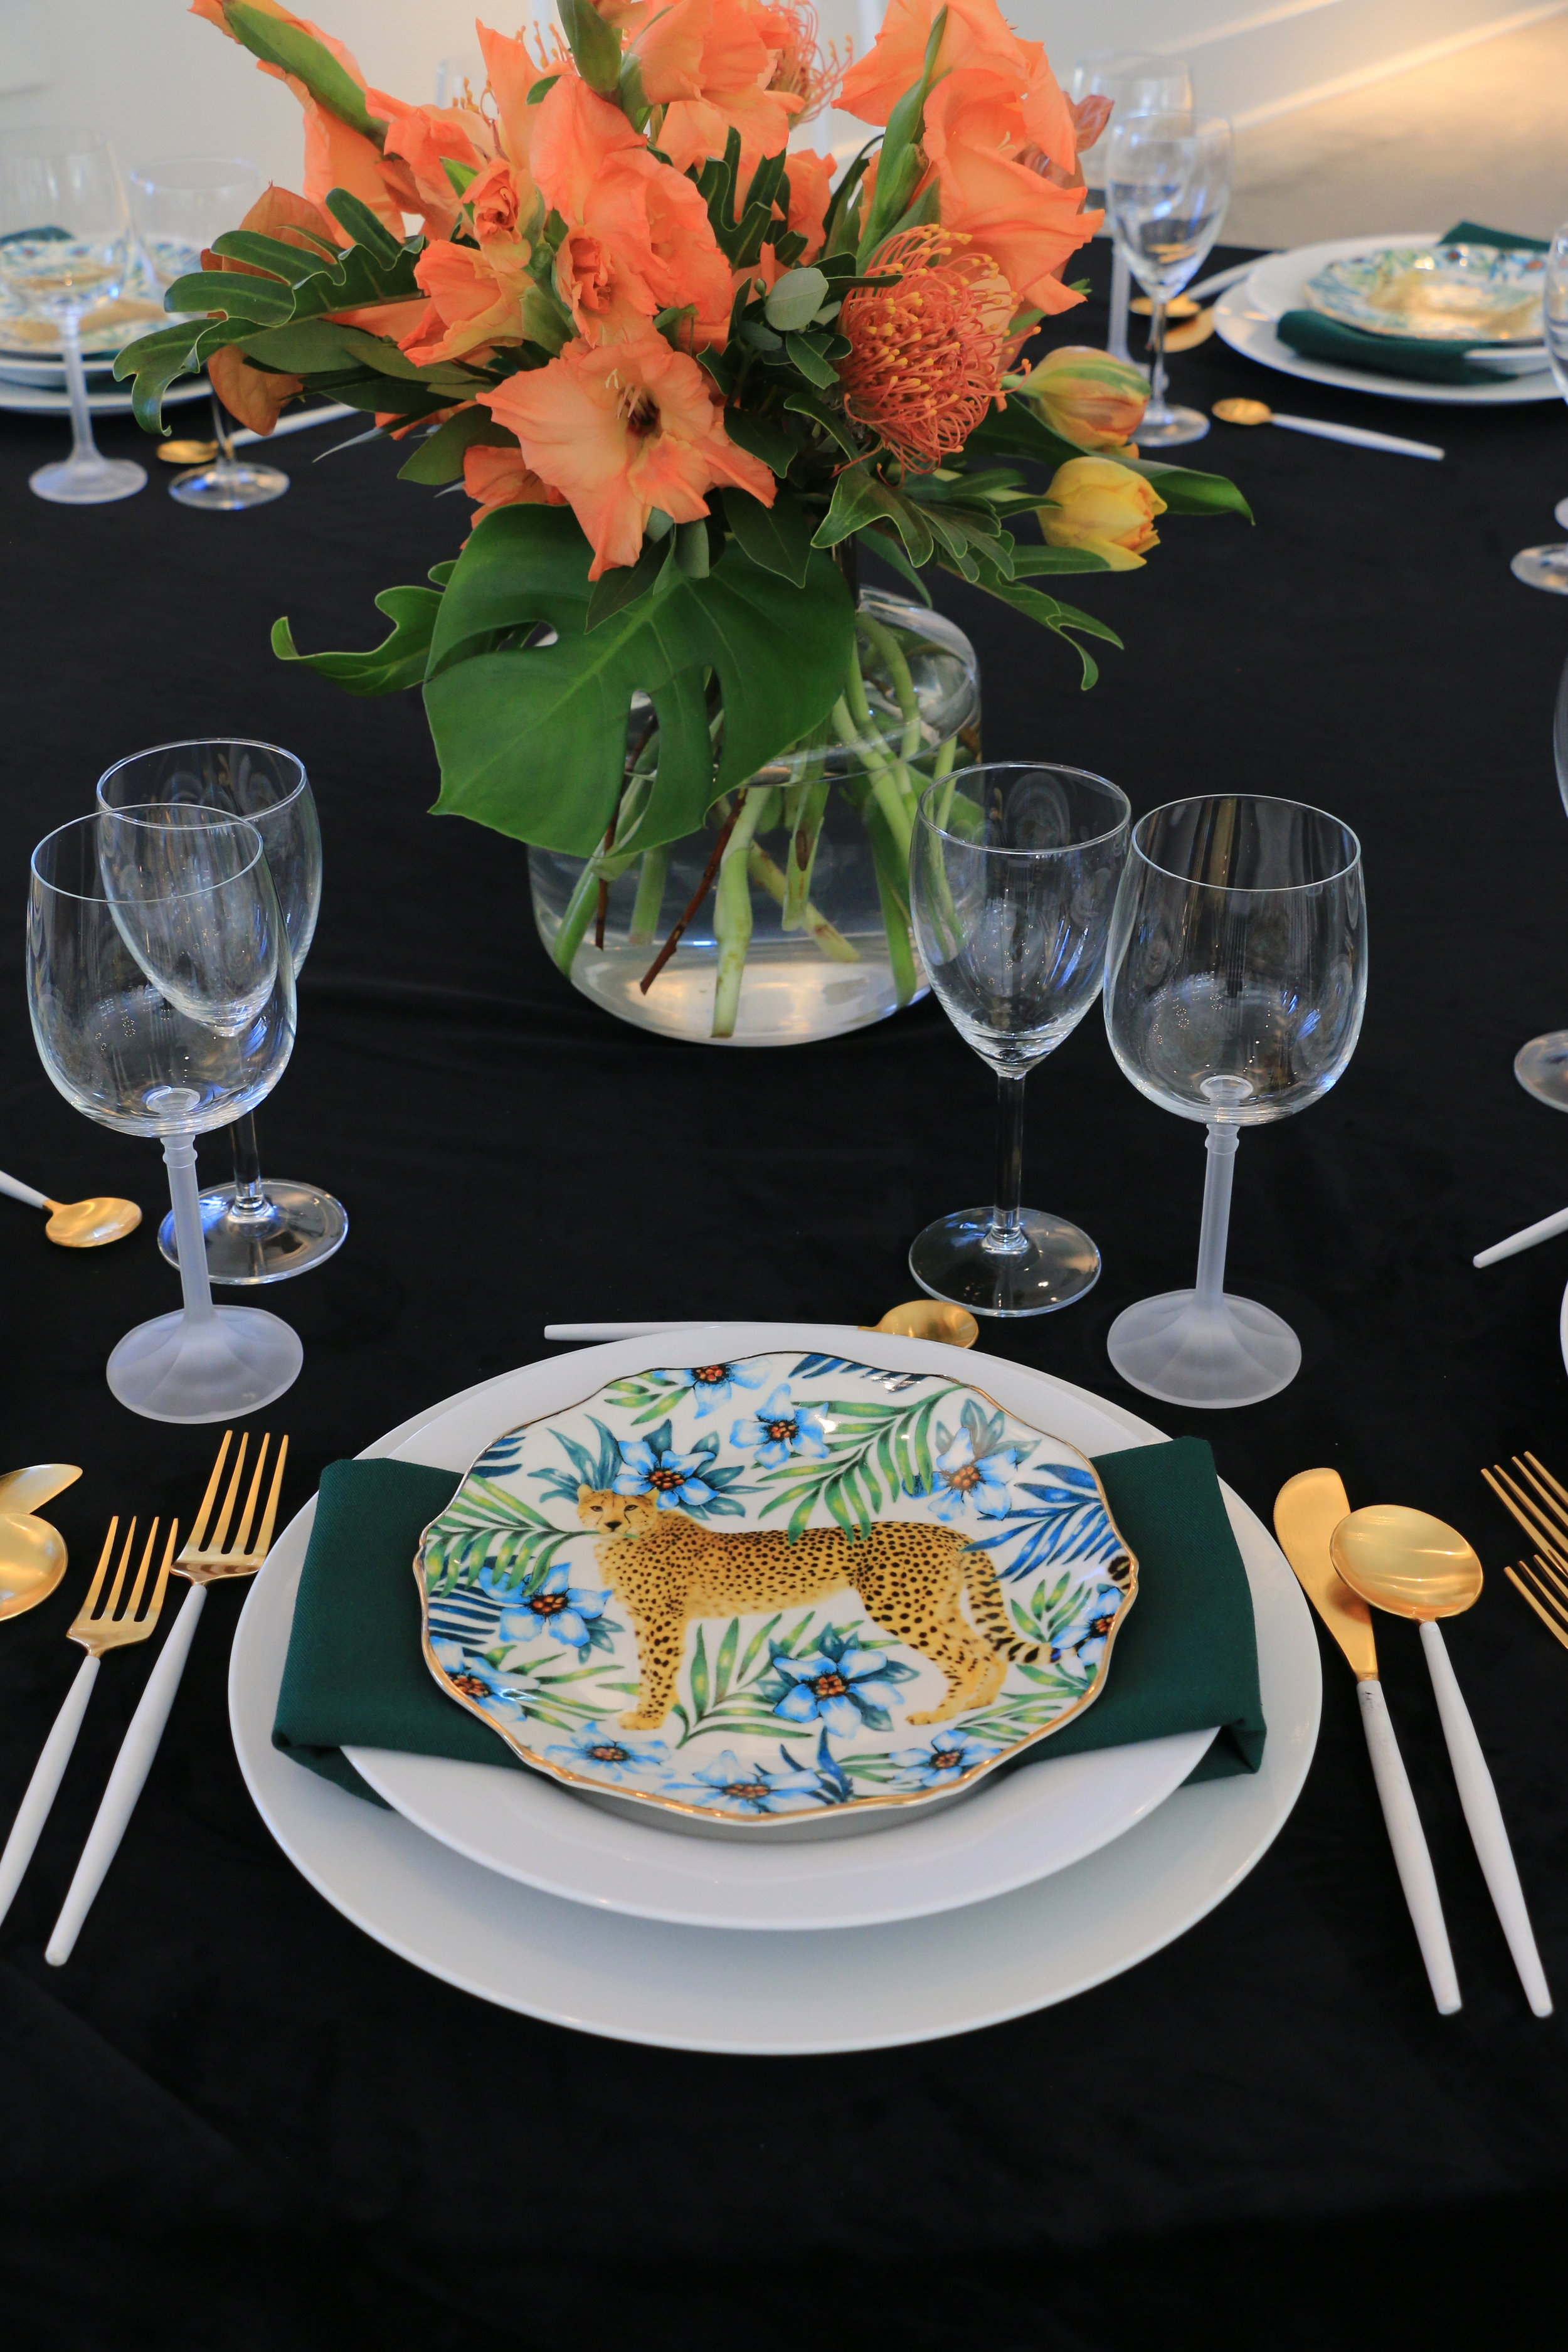 Anthony_and_Stork-Leopard-Table-setting_Events_4641.JPG